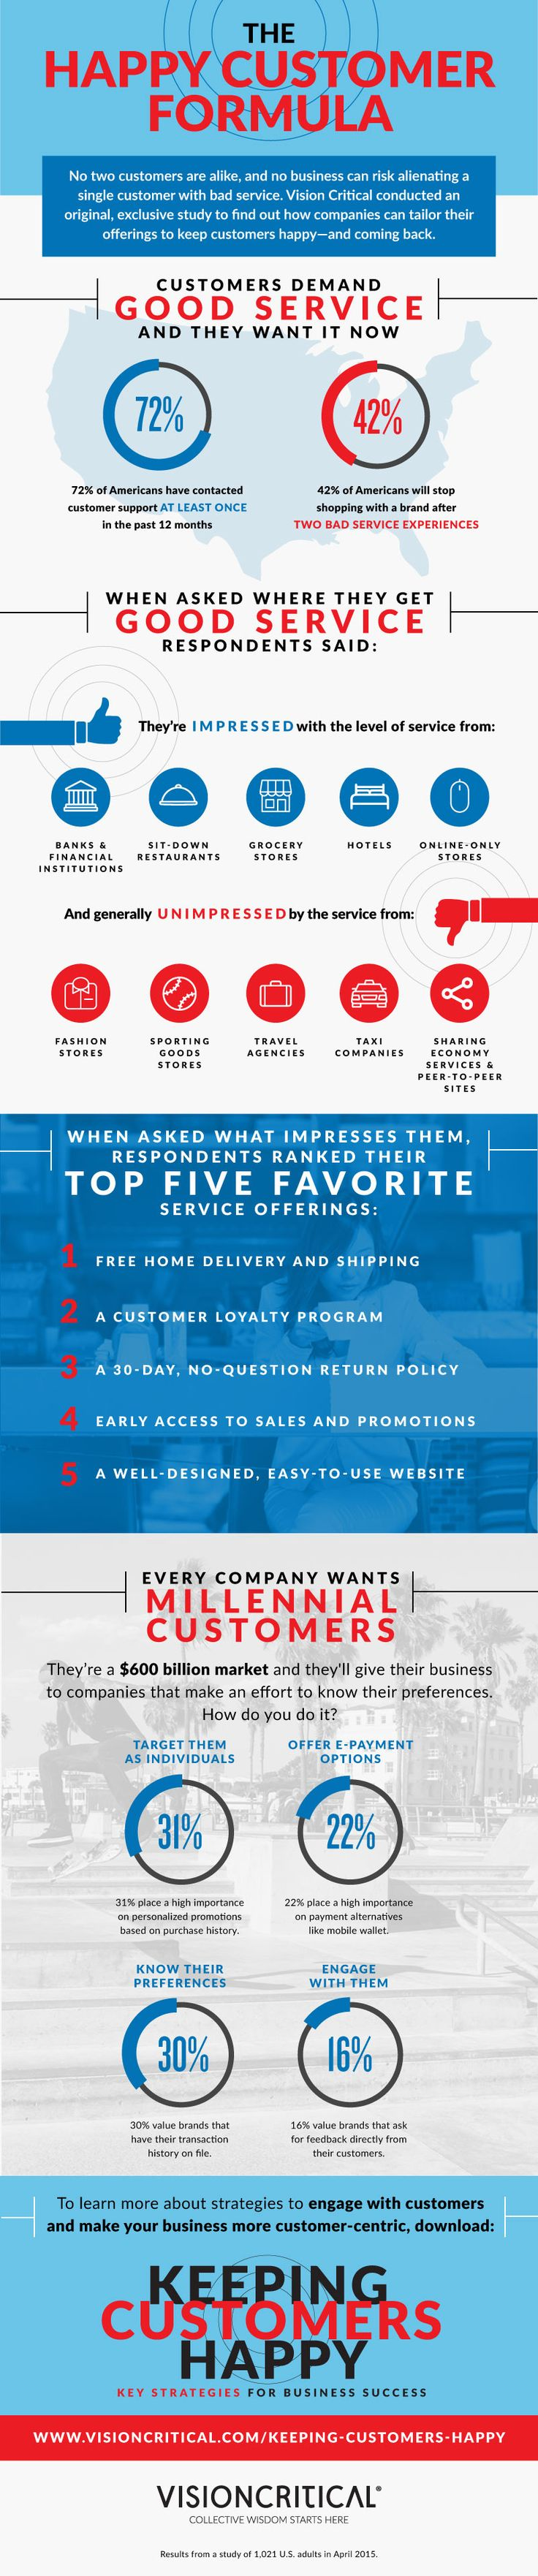 The Happy Customer Formula #infographic #Business